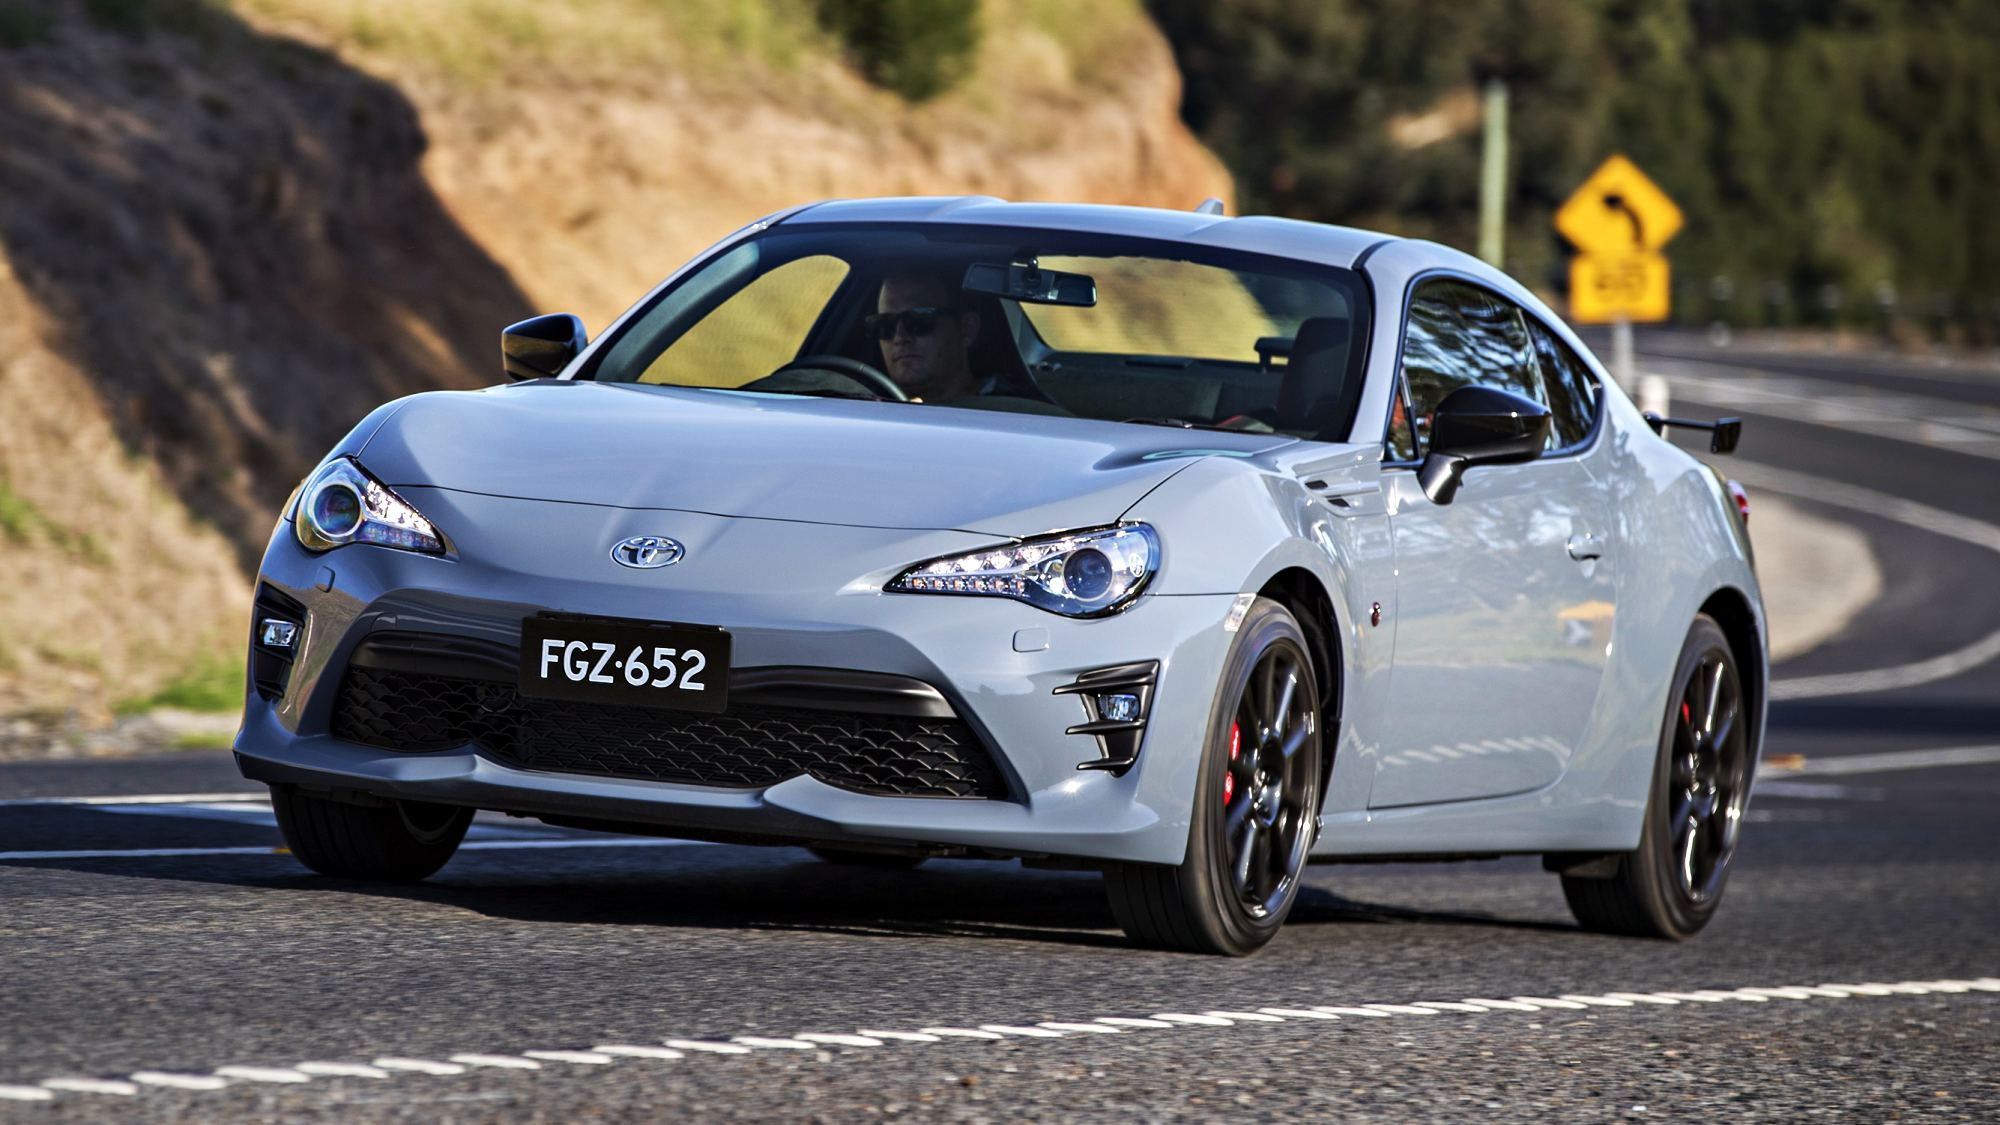 News - Bigger Engine Coming To All-New Toyota 86, Subaru BRZ